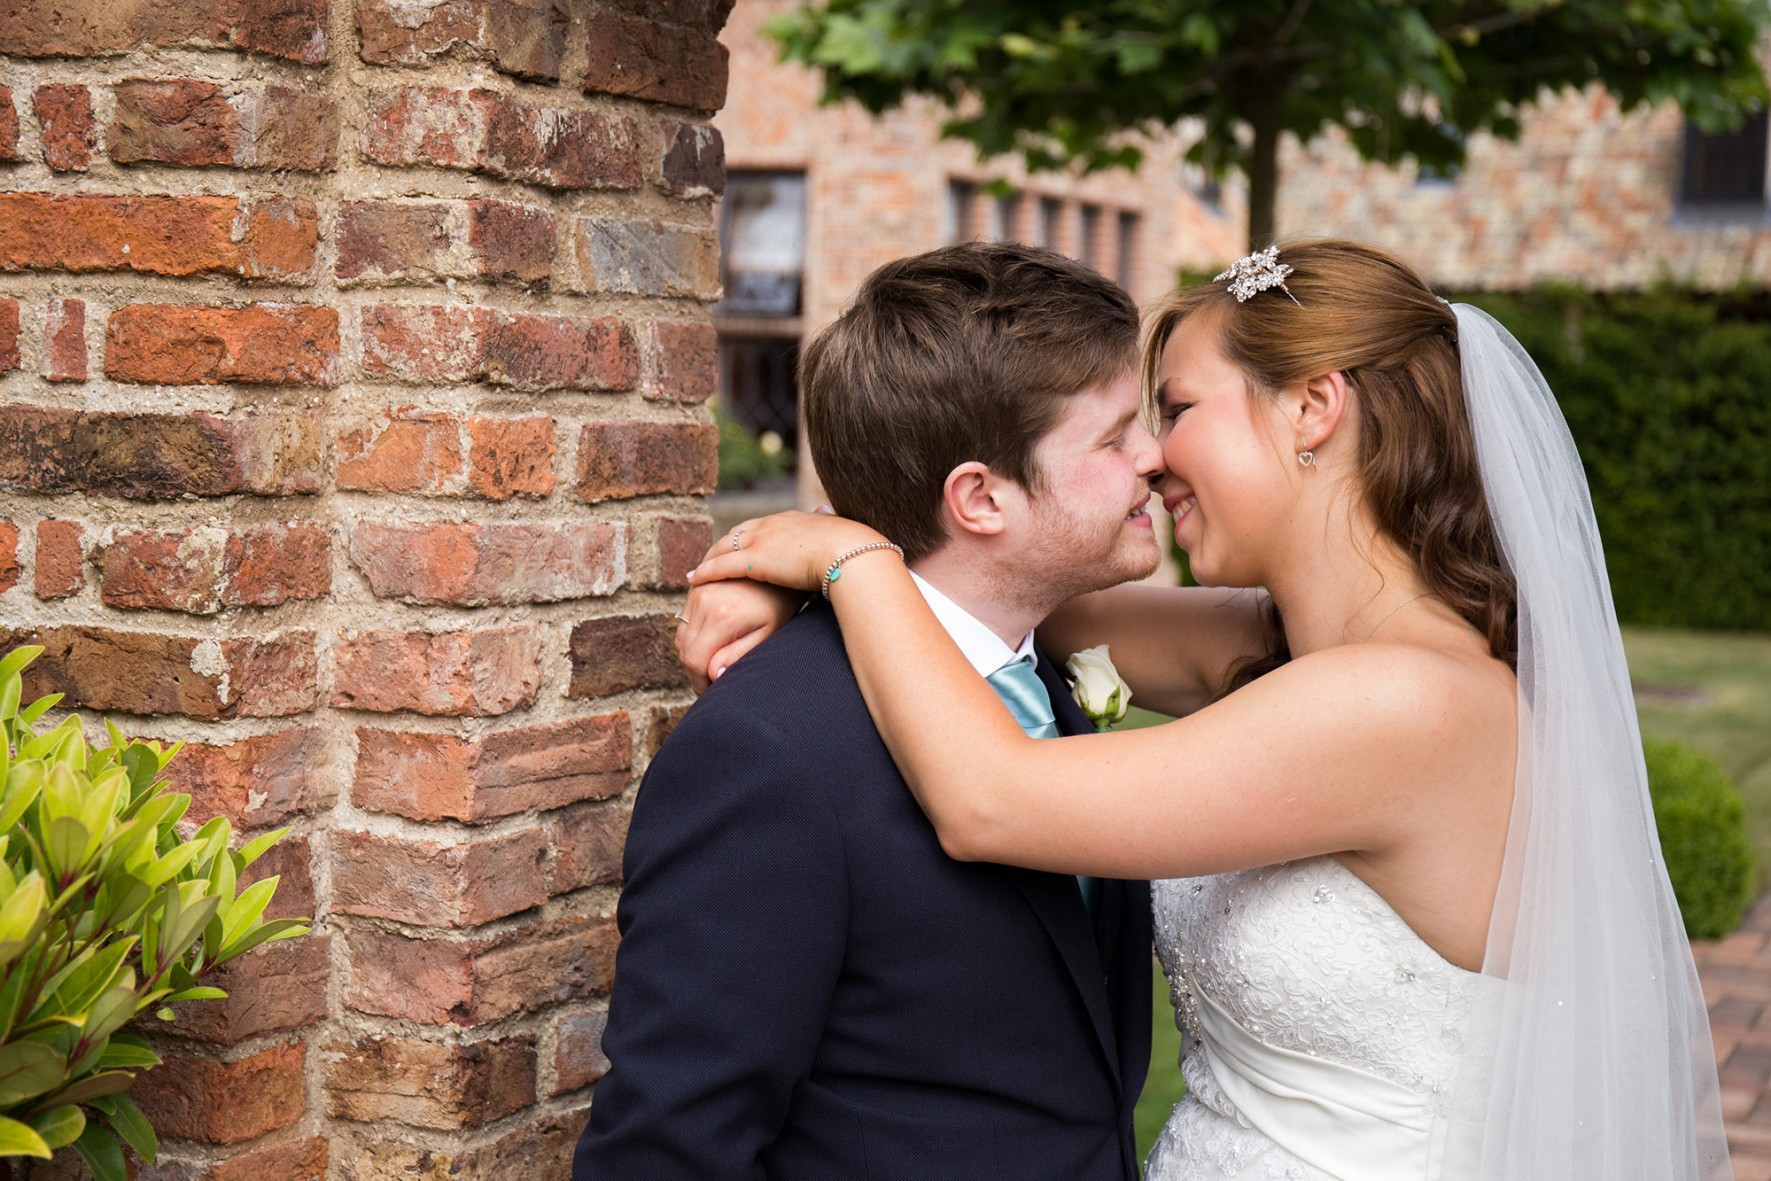 The Old Hall Ely Wedding Photographer bride and groom